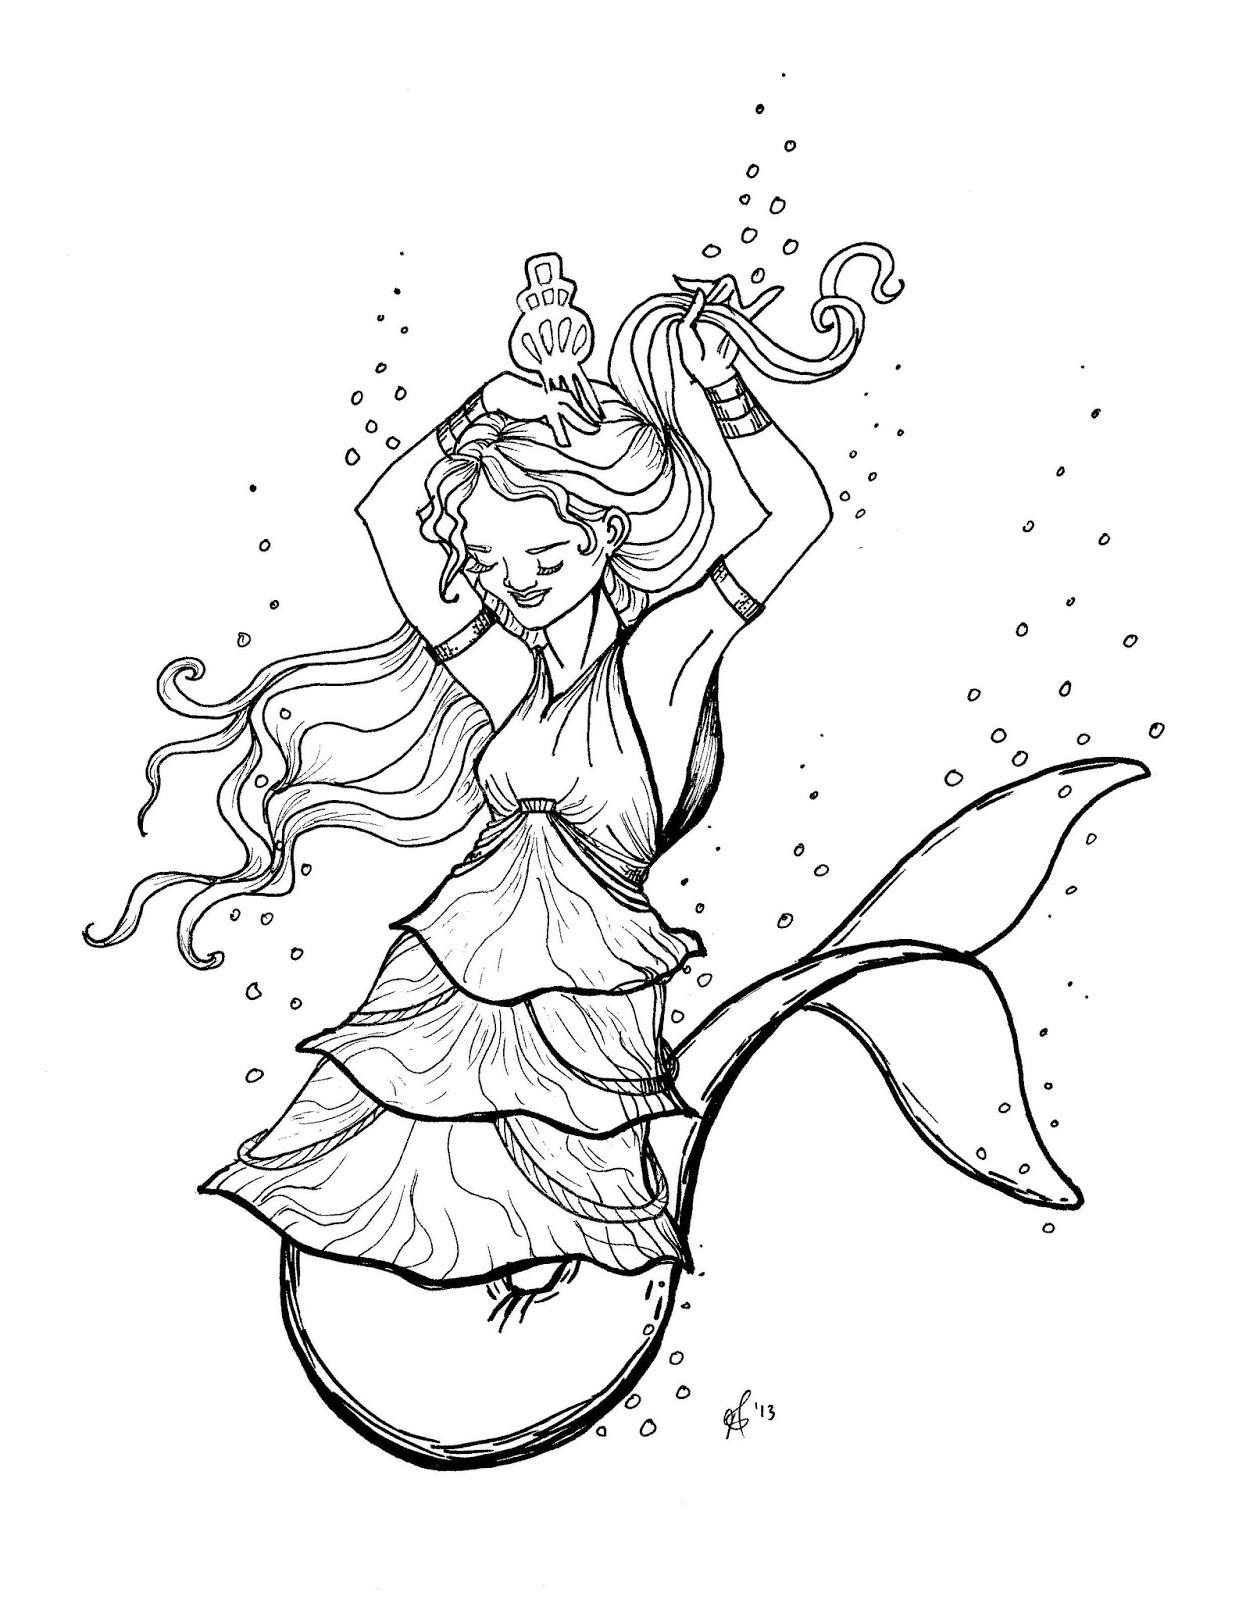 coloring pages of mermaid tails sewpaperpaint free printable mermaid tail metallic card of coloring mermaid tails pages